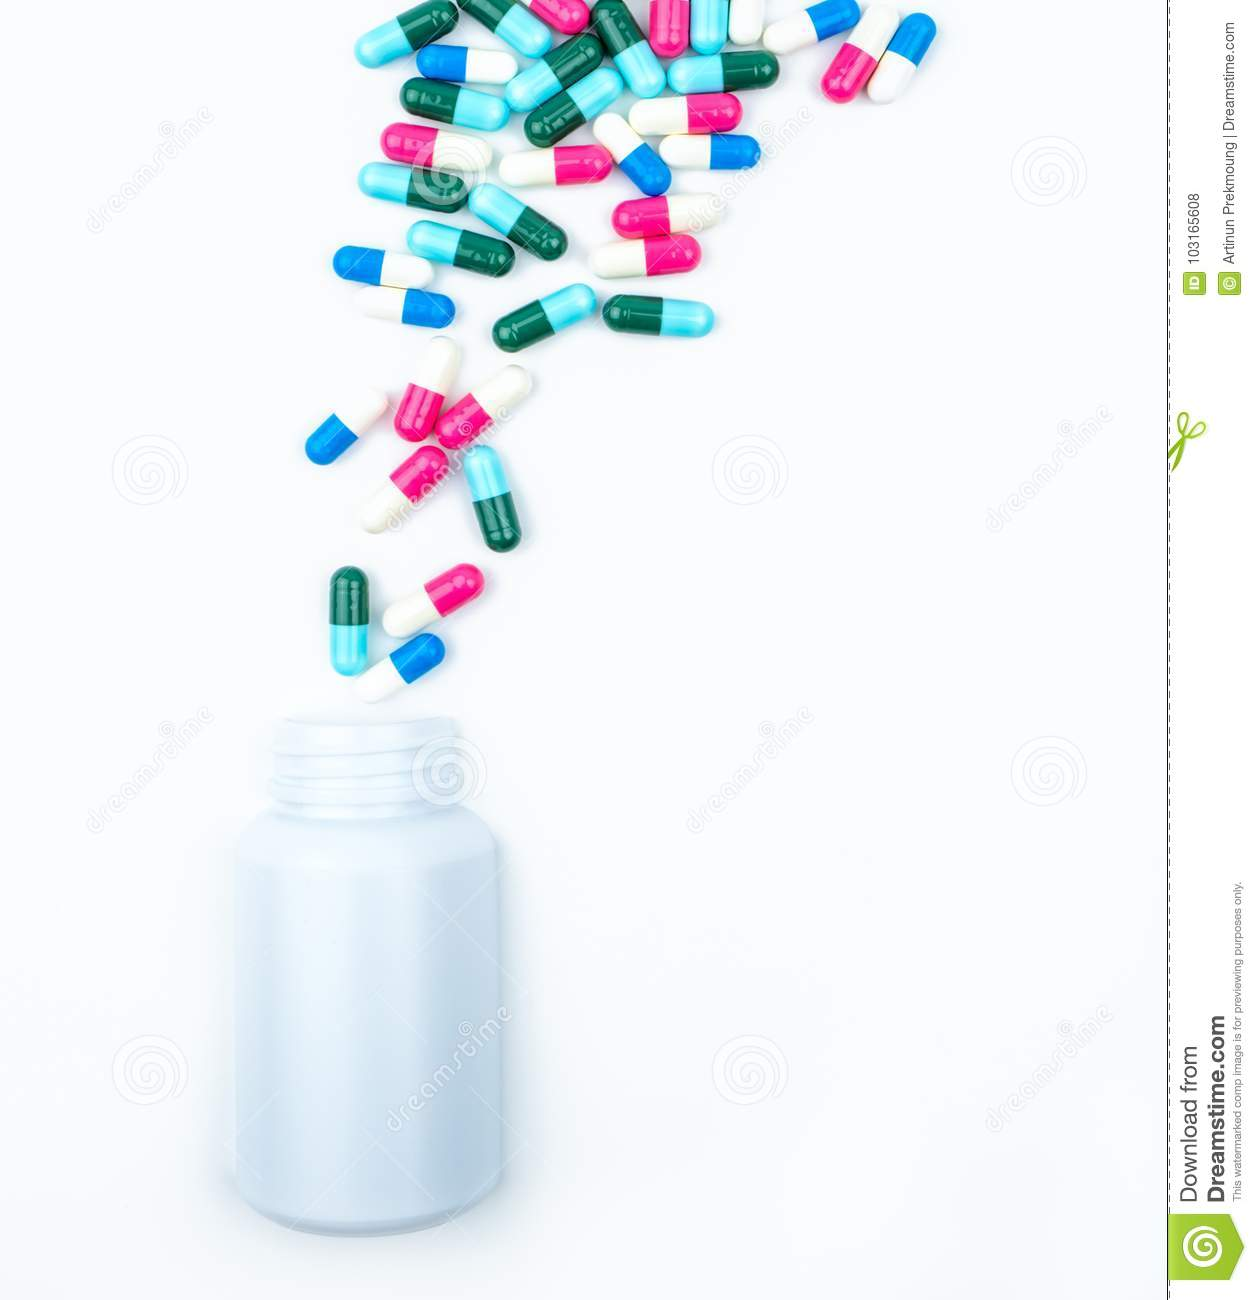 Pouring antibiotics capsule pills into plastic bottle isolated on white background with copy space. Drug storage, antibiotic drug